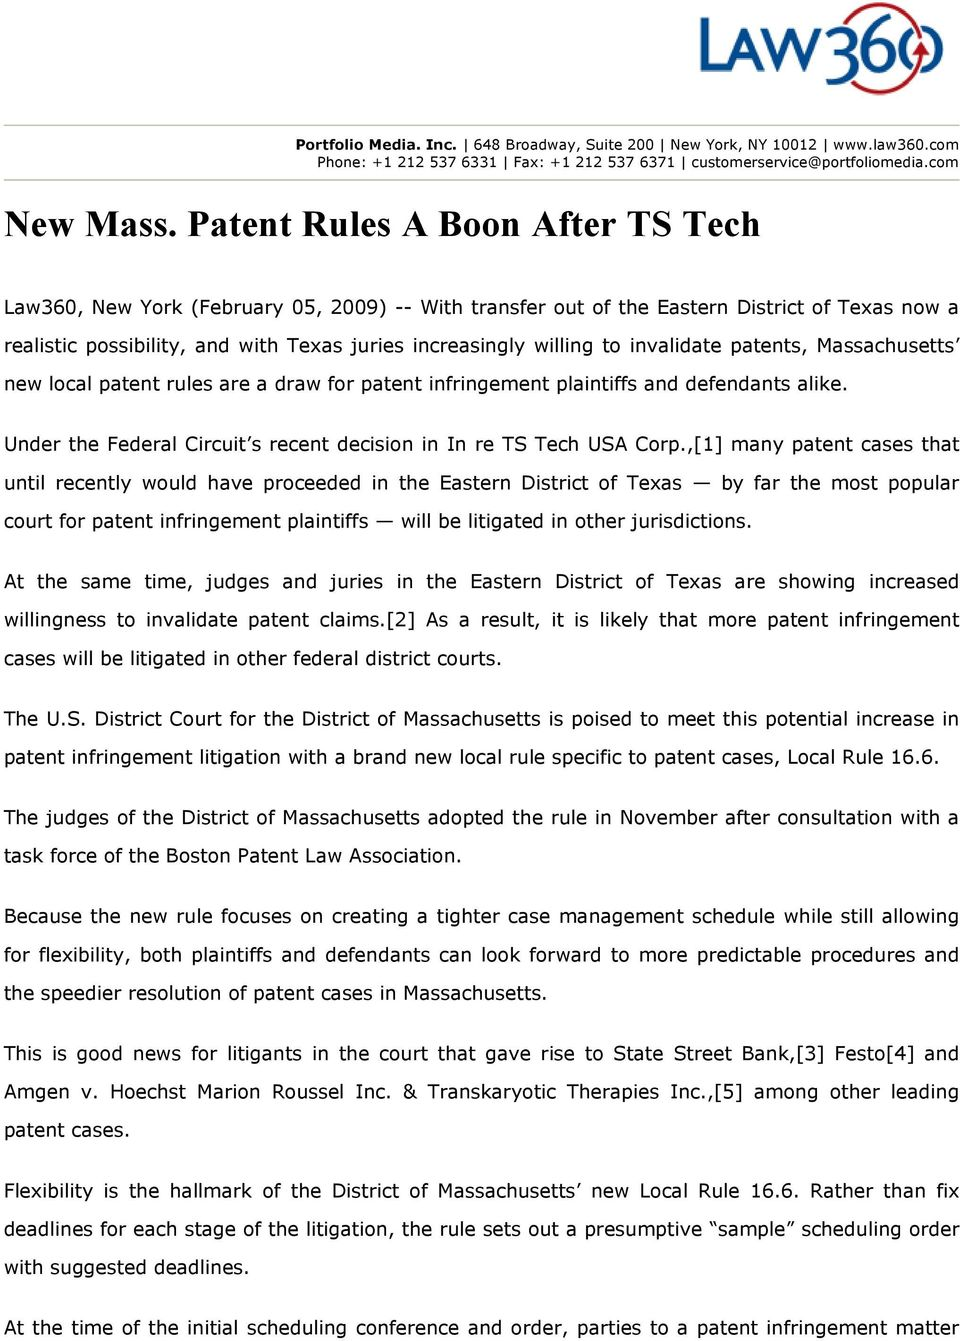 New Mass  Patent Rules A Boon After TS Tech - PDF